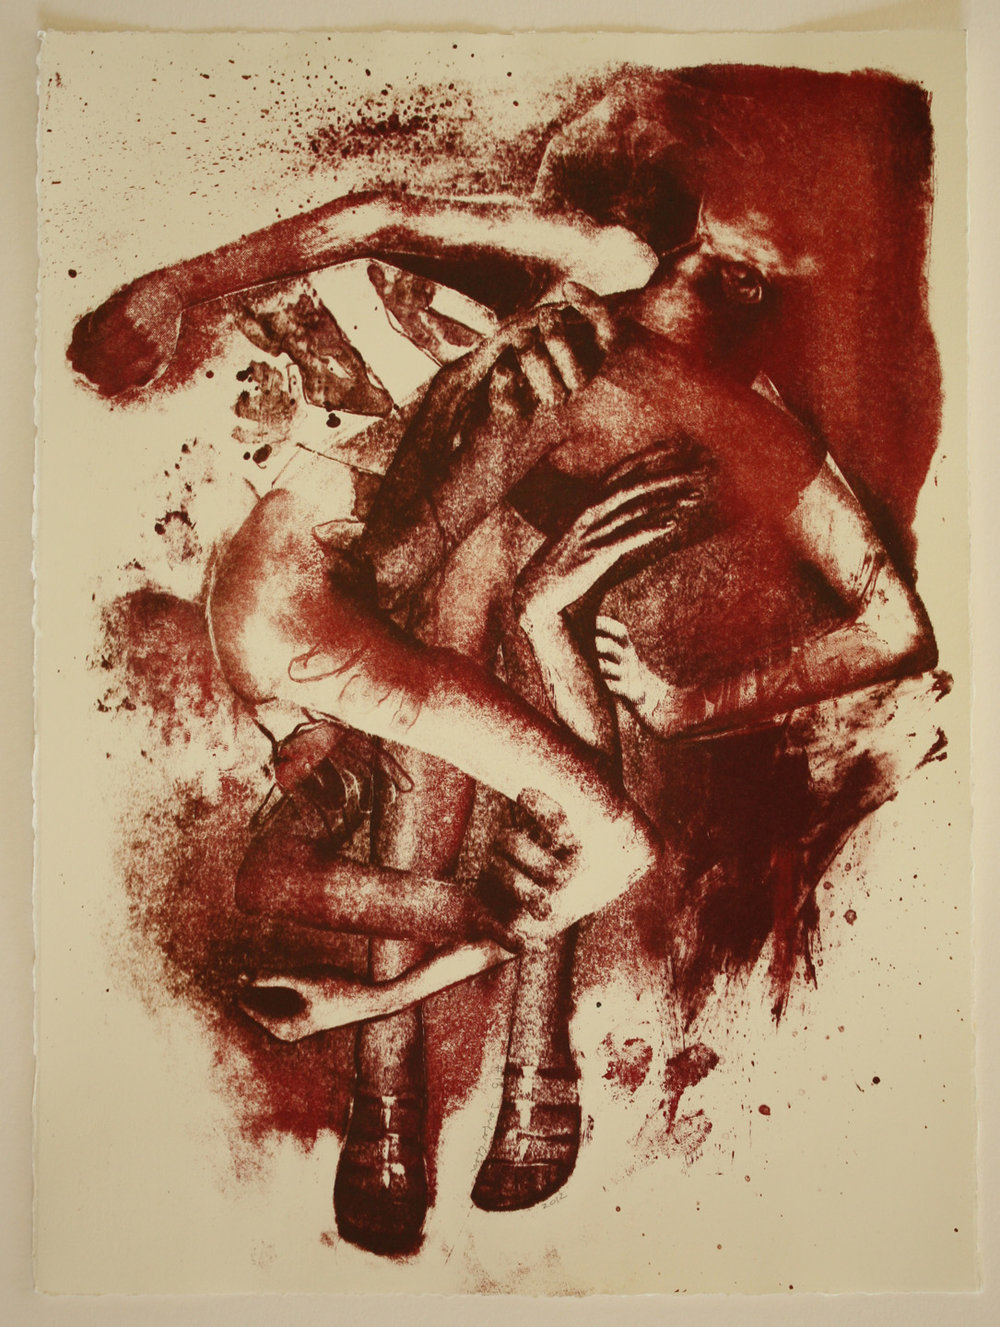 2012_ #13 Untitled (Collaged Parts) #13_ Reductive Stone Lithography_ 15x11_.JPG